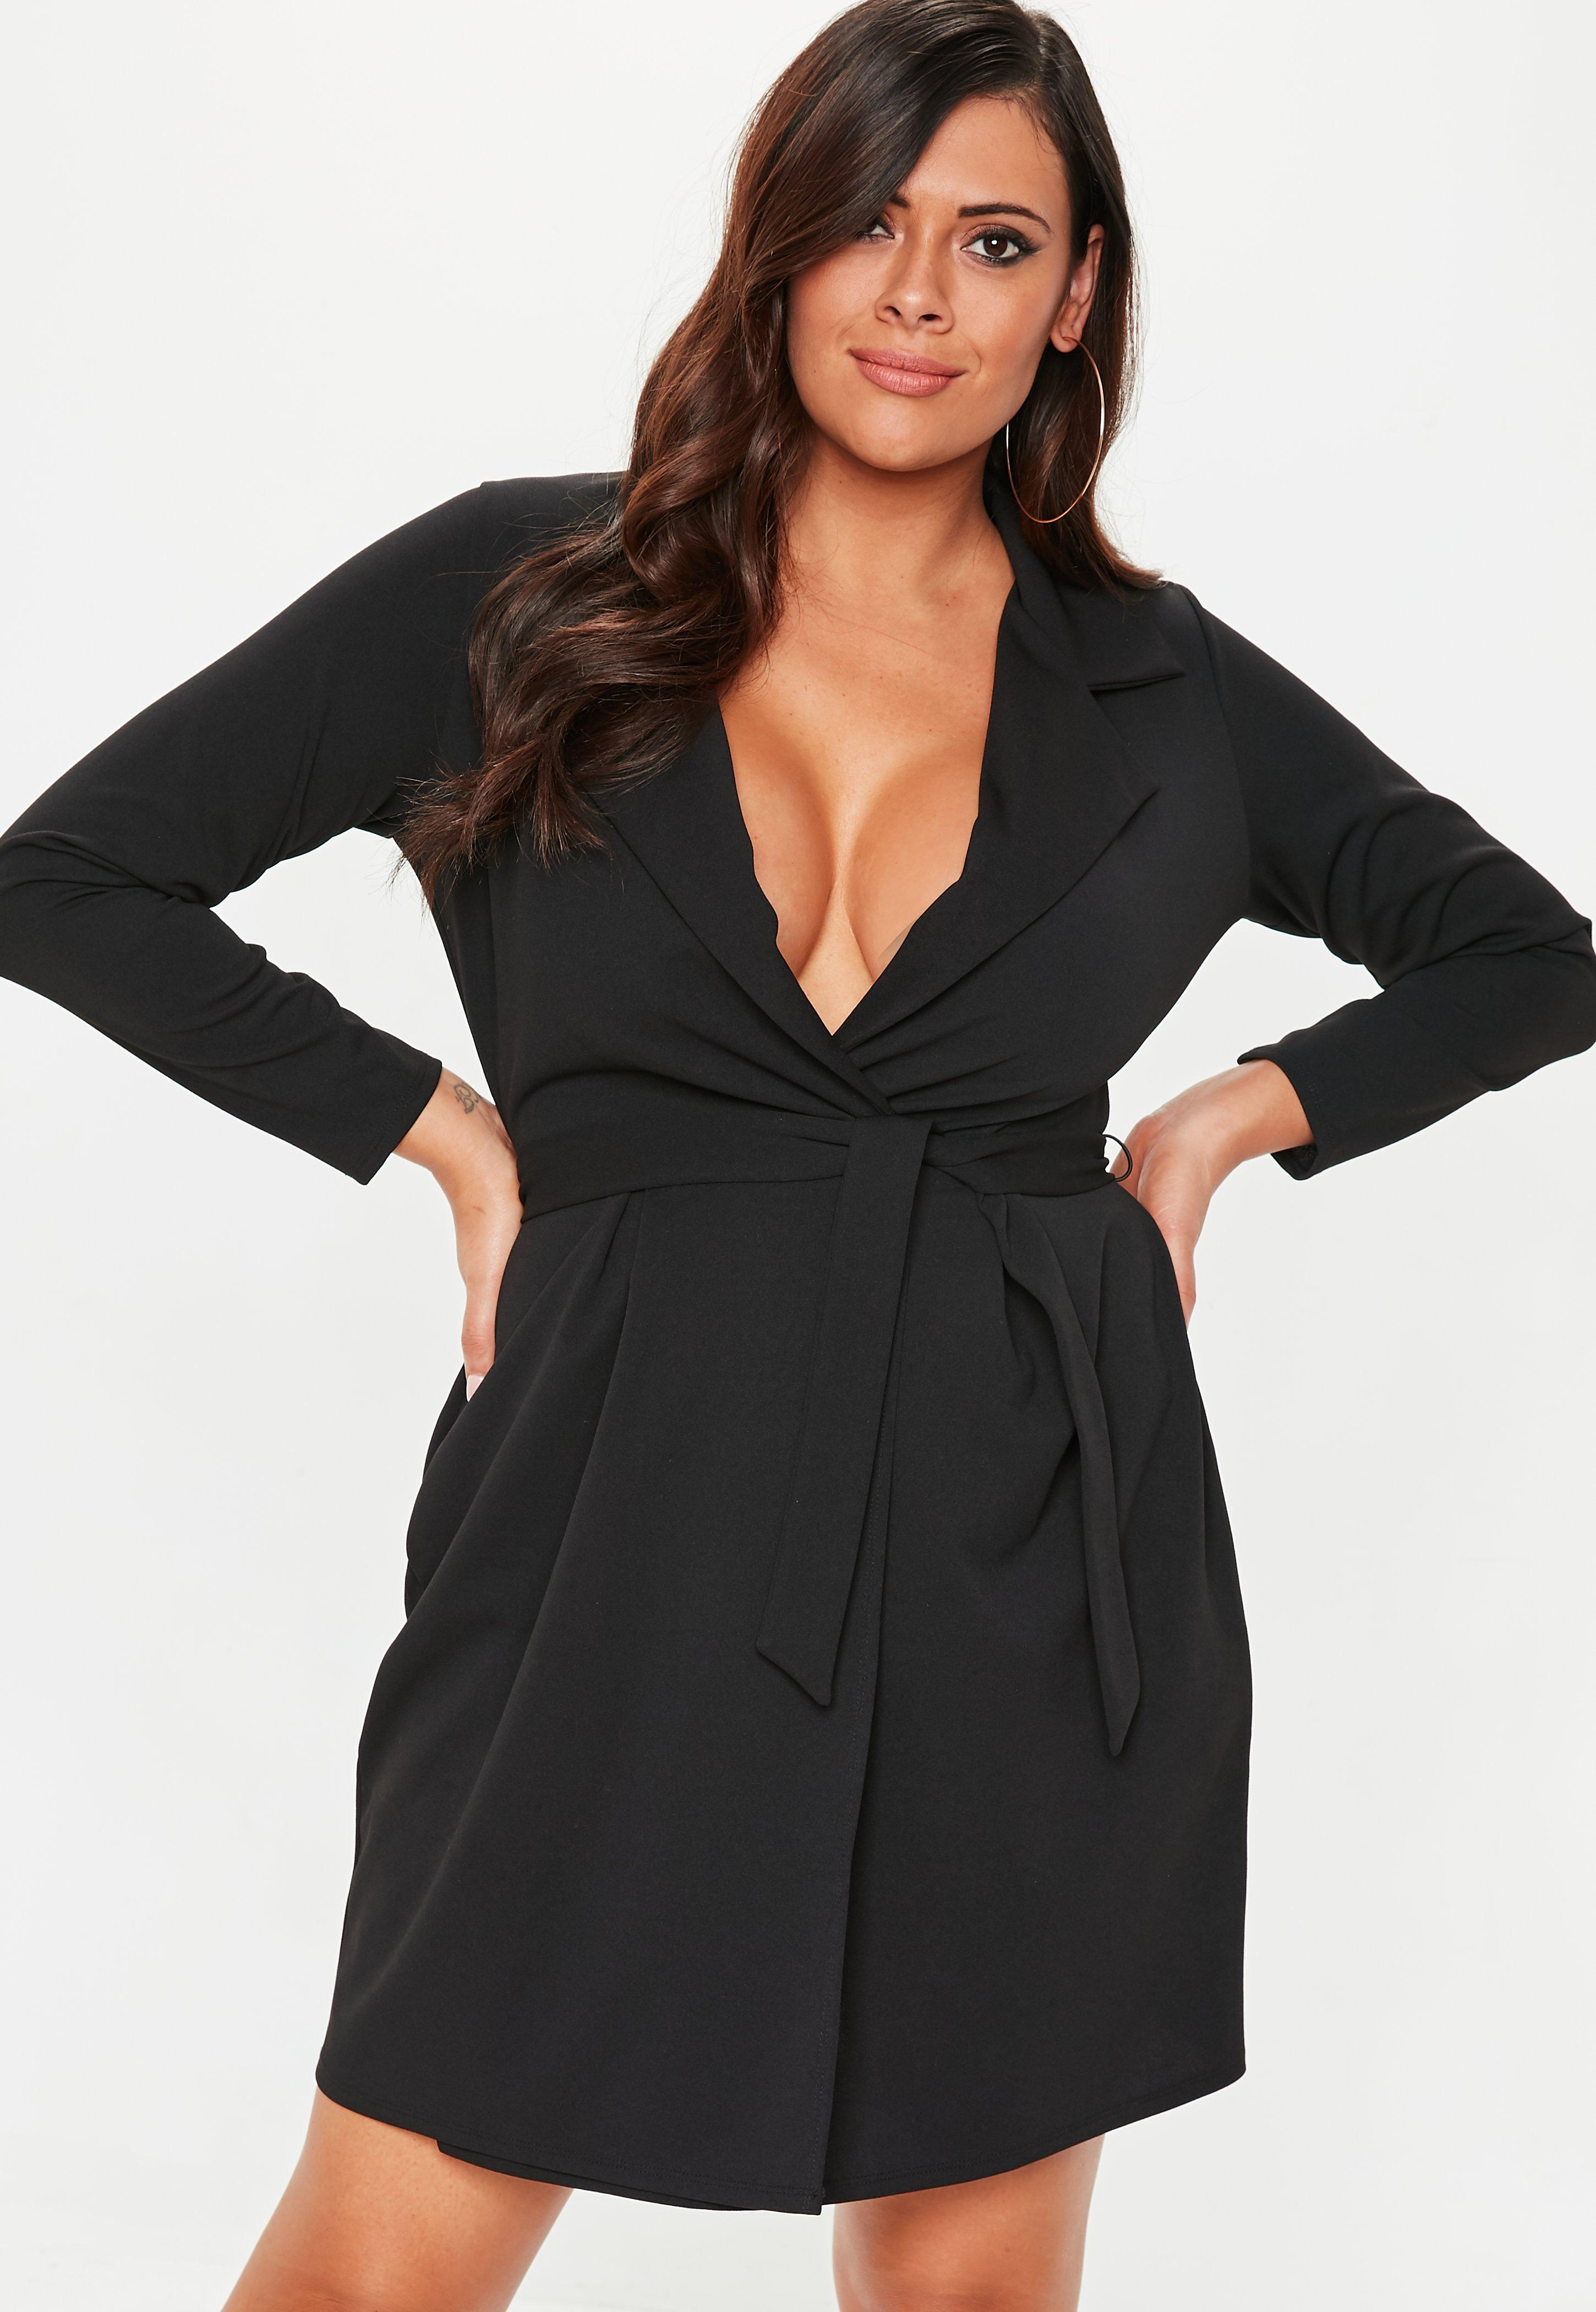 Mode grande taille   Vêtement femme grande taille - Missguided 238521ebd7f